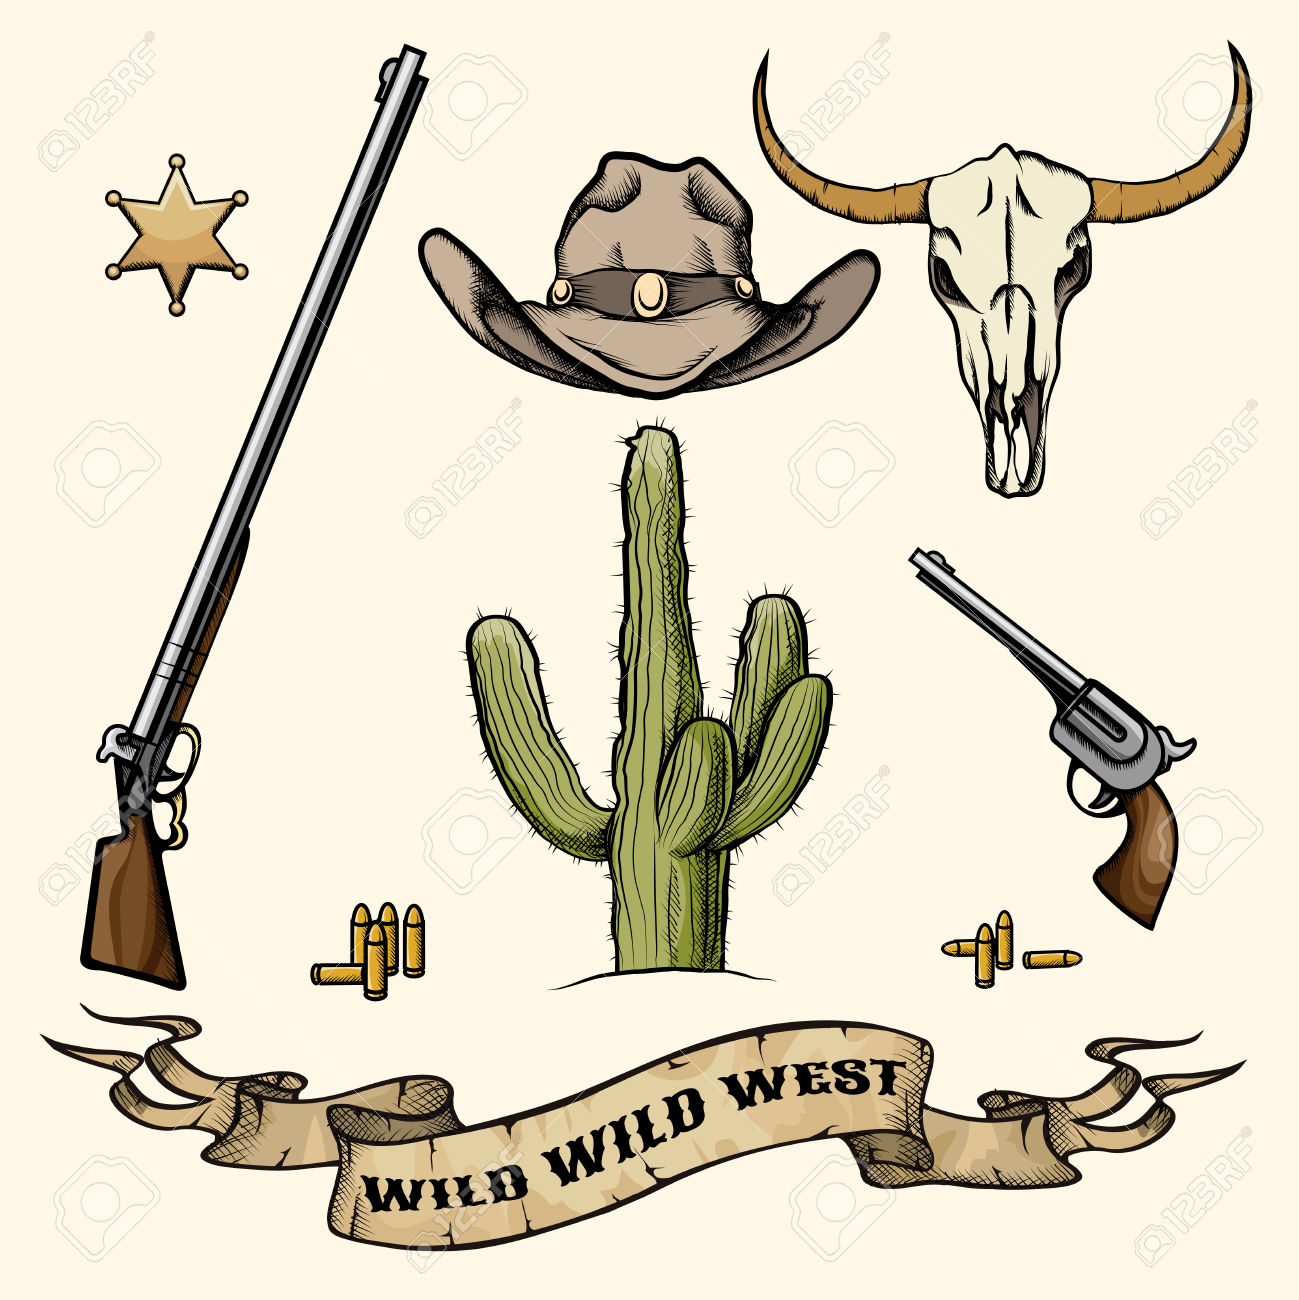 20,035 Old West Cliparts, Stock Vector And Royalty Free Old West.